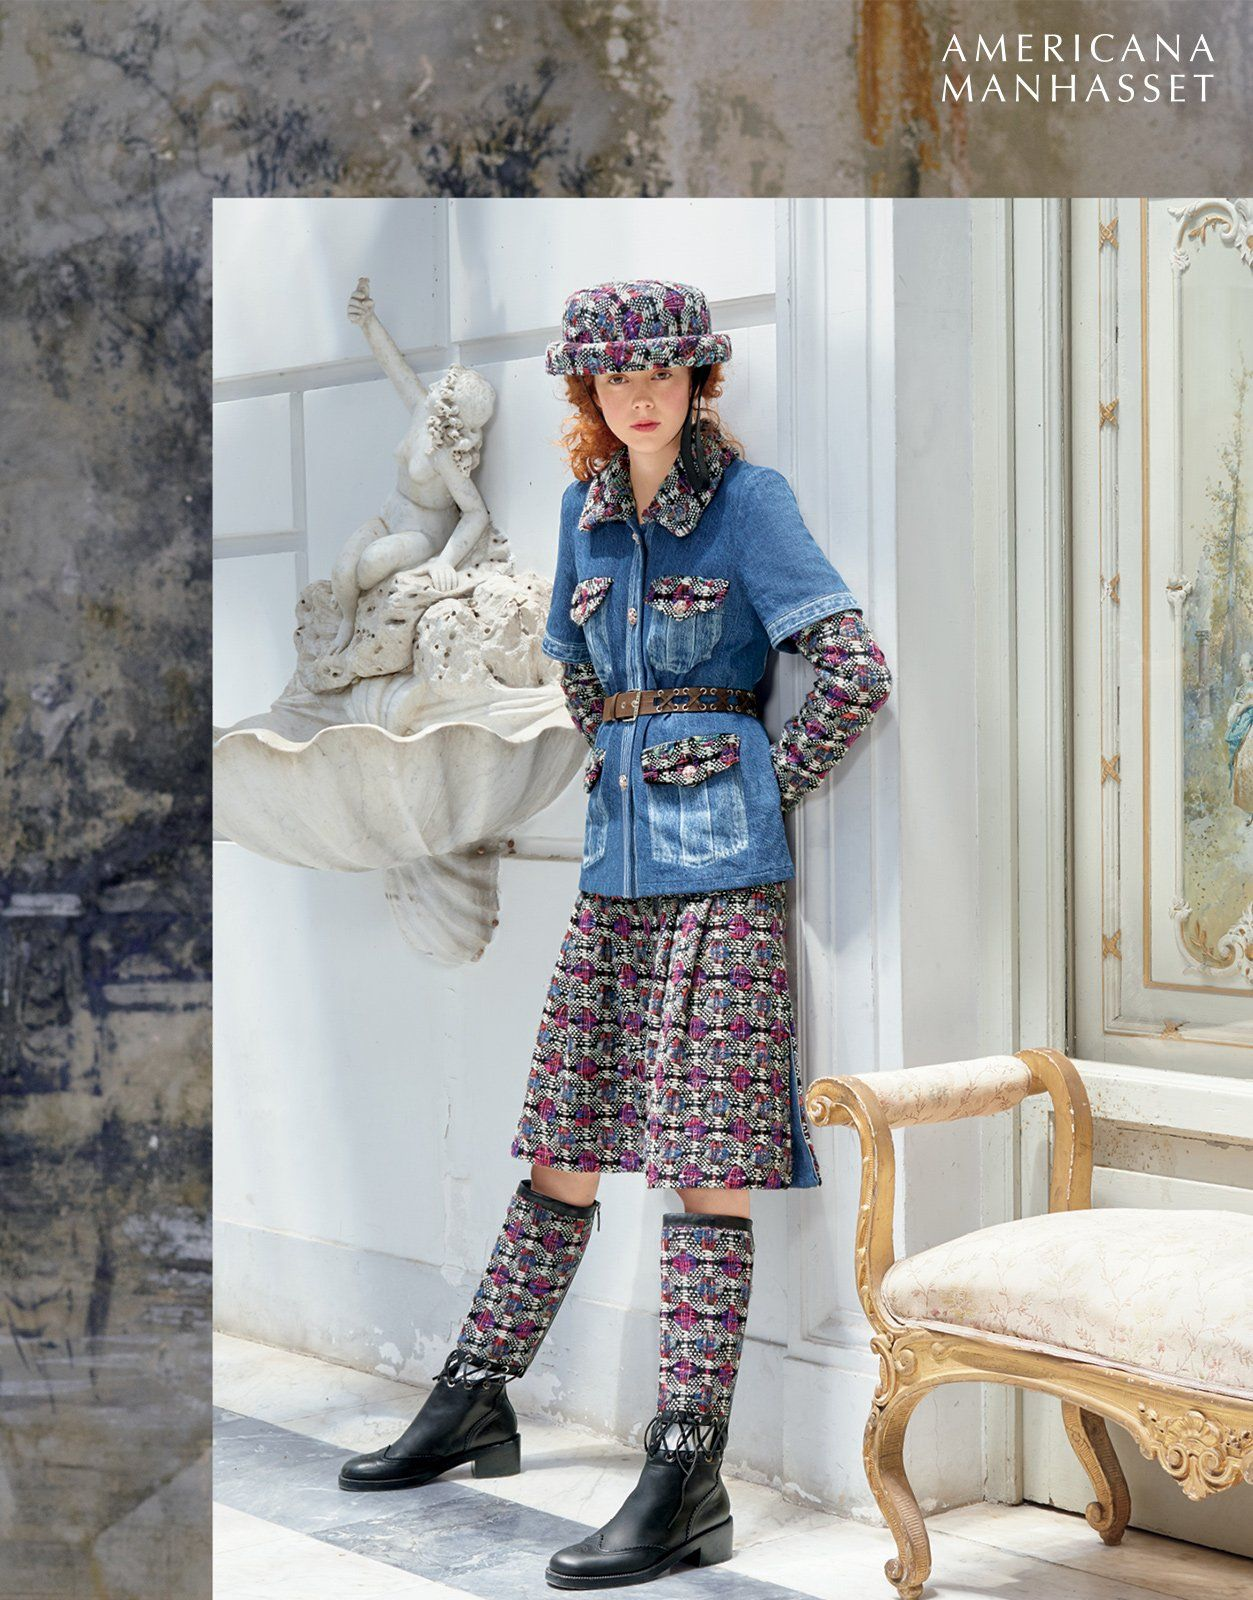 Americana Manhasset Fall 2016 - CHANEL AT HIRSHLEIFERS  388686ac1a9c8